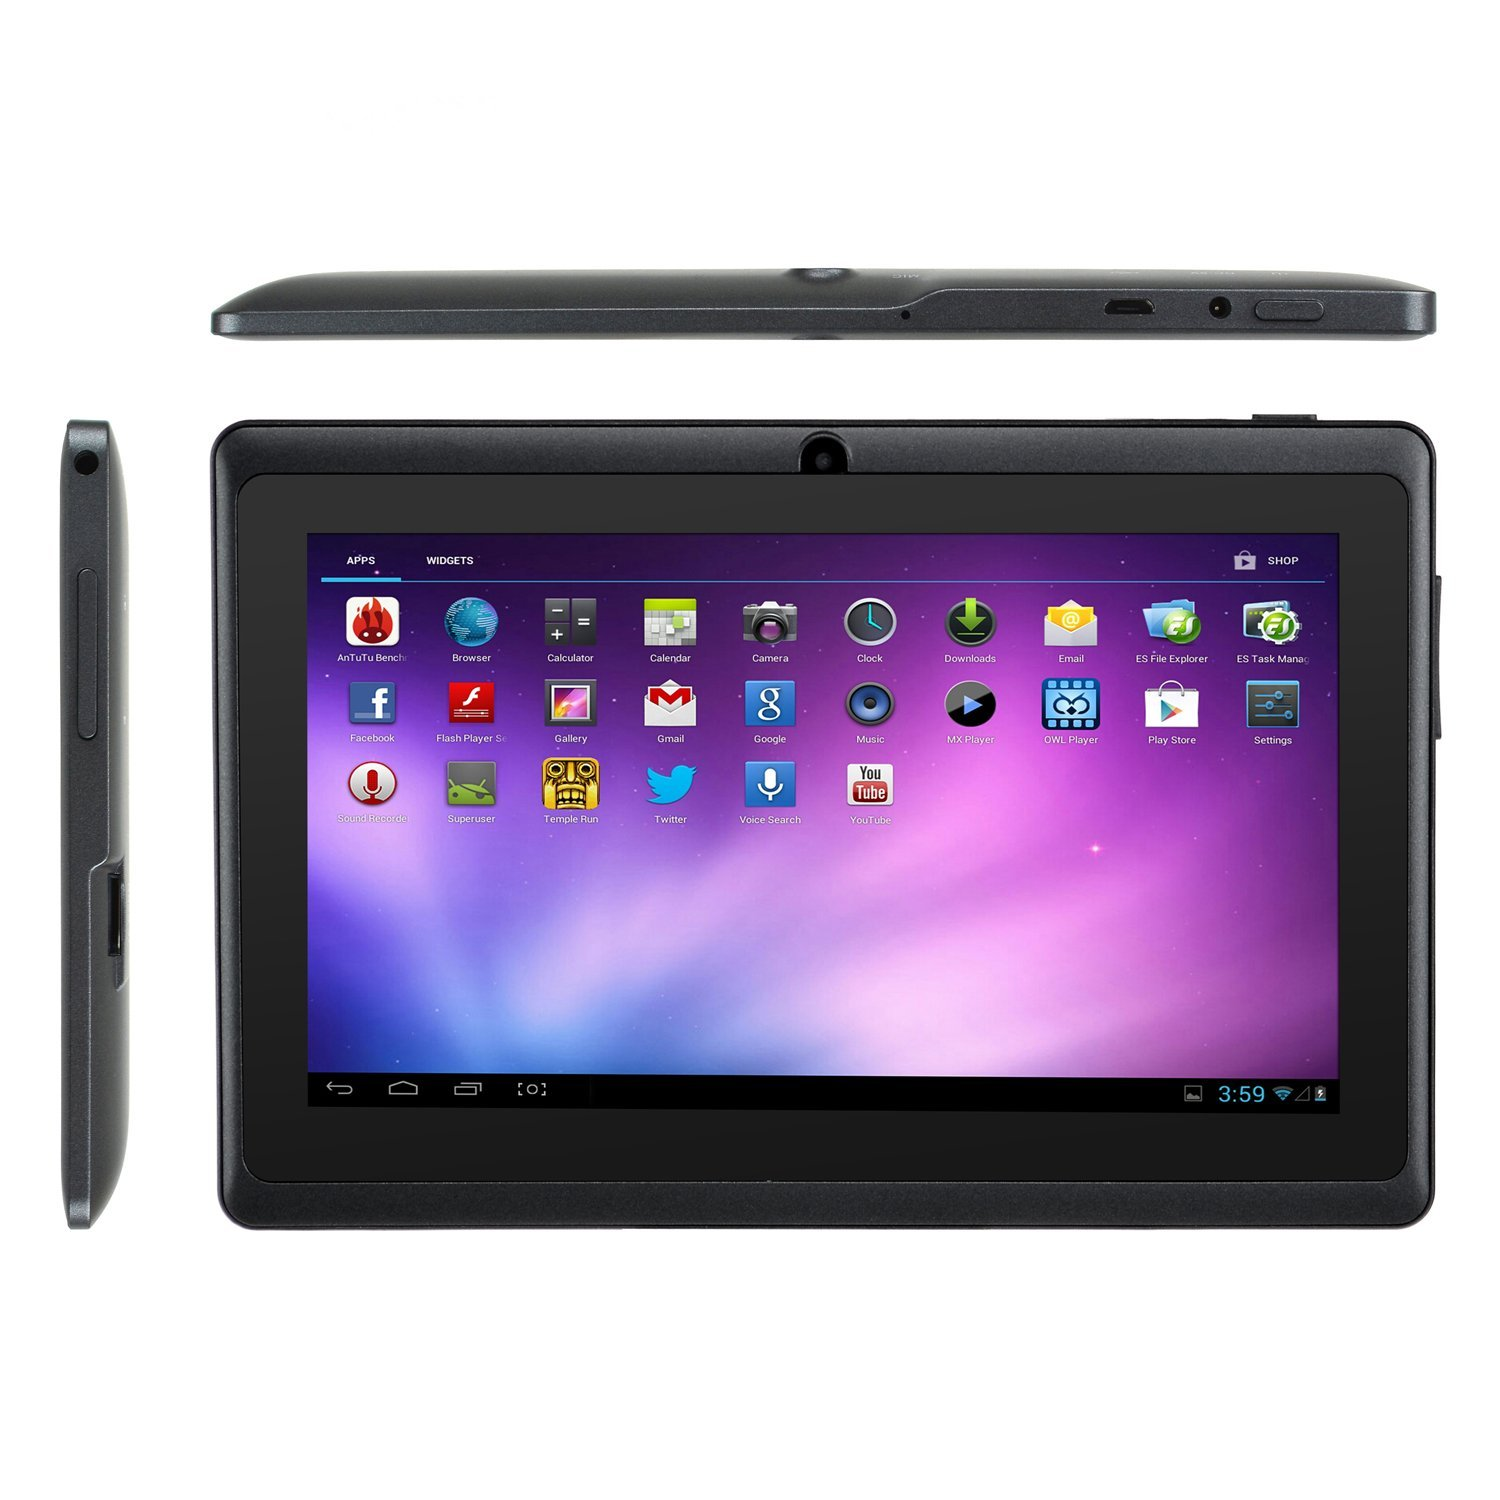 Soft Gold mid 7 inch pc tablet reviews same